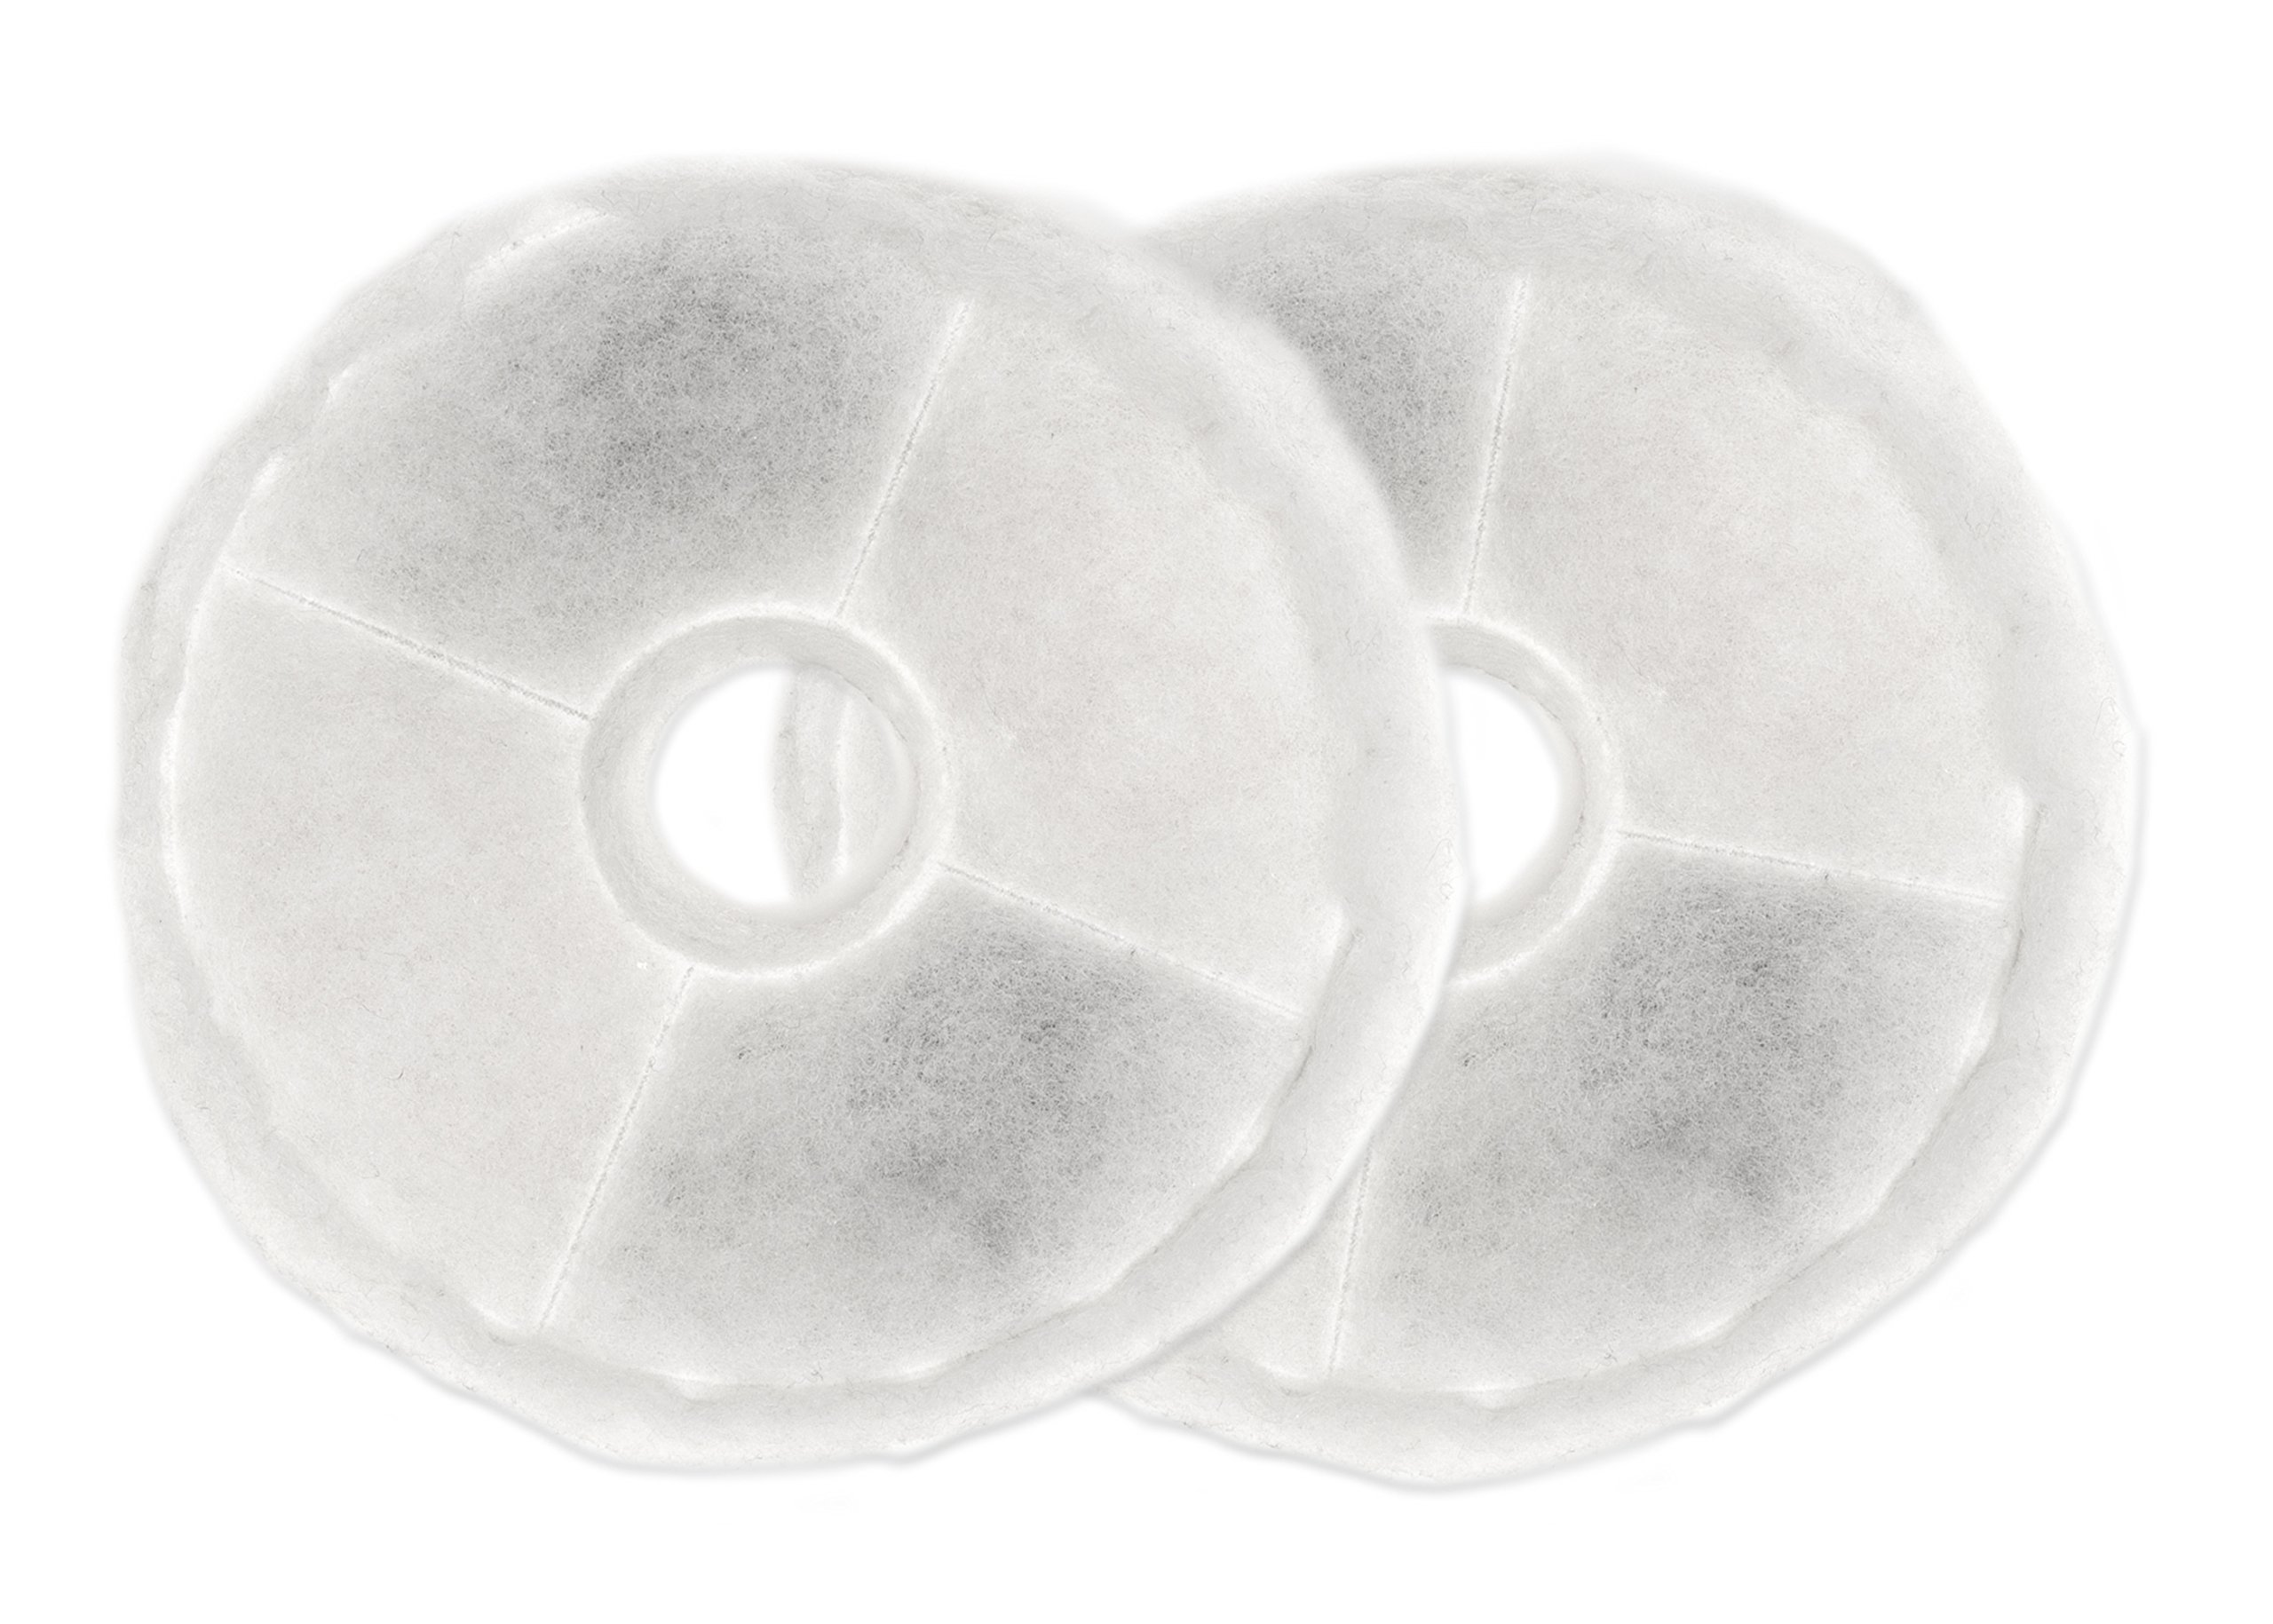 Catit Flower Fountain Replacement Filters- 2 pack